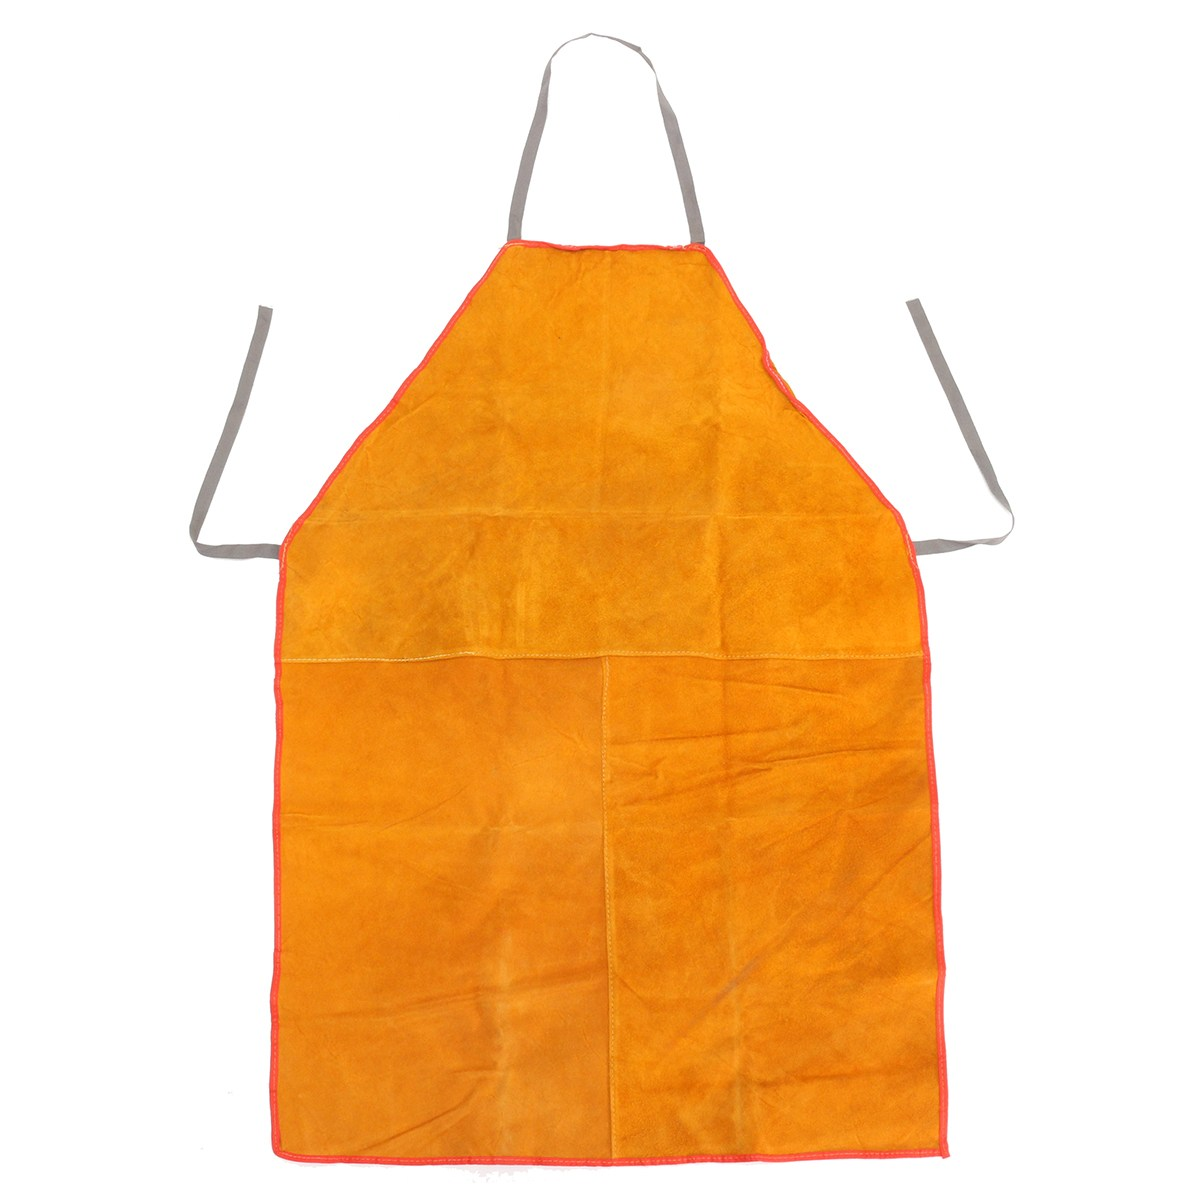 Workplace Safety Supplies Security & Protection Industrious Safurance Welders Welding Apron Chrome Leather Tan Heavy Duty Blacksmith Workplace Safety Safety Clothing Self Protect Elegant Shape